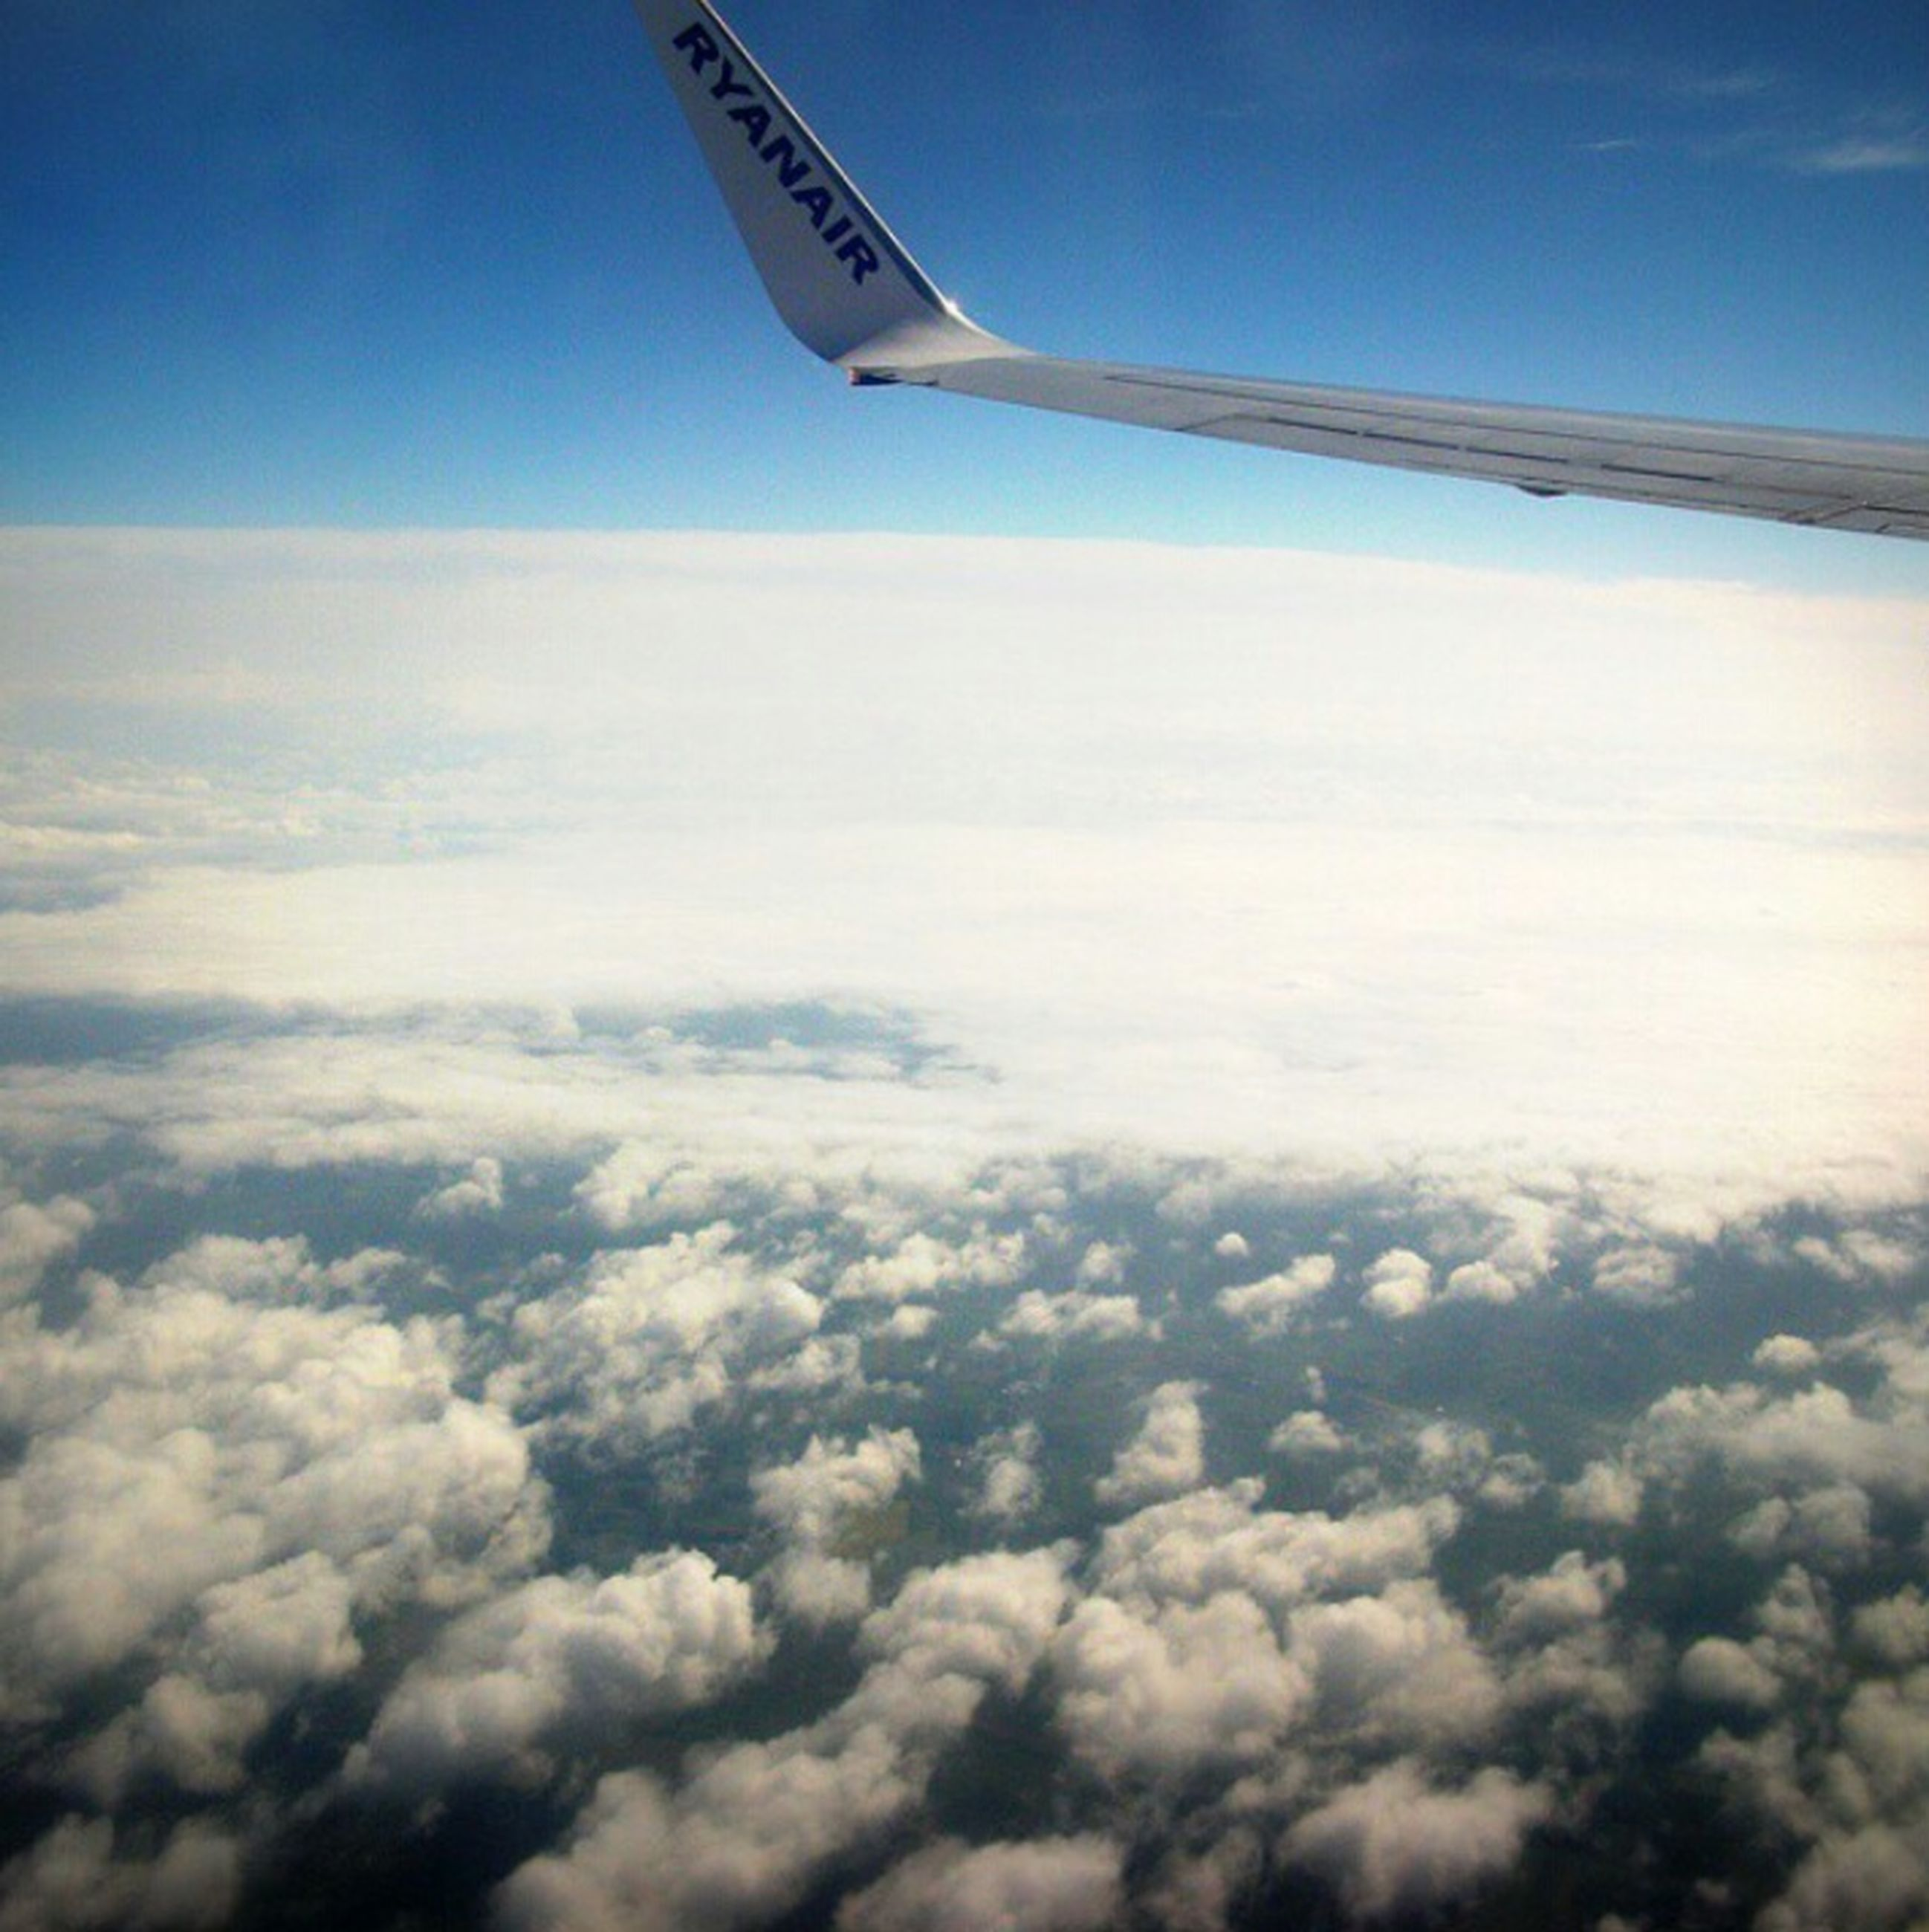 airplane, cloud - sky, aerial view, sky, flying, transportation, scenics, nature, air vehicle, travel, outdoors, no people, day, beauty in nature, aircraft wing, landscape, plane, airplane wing